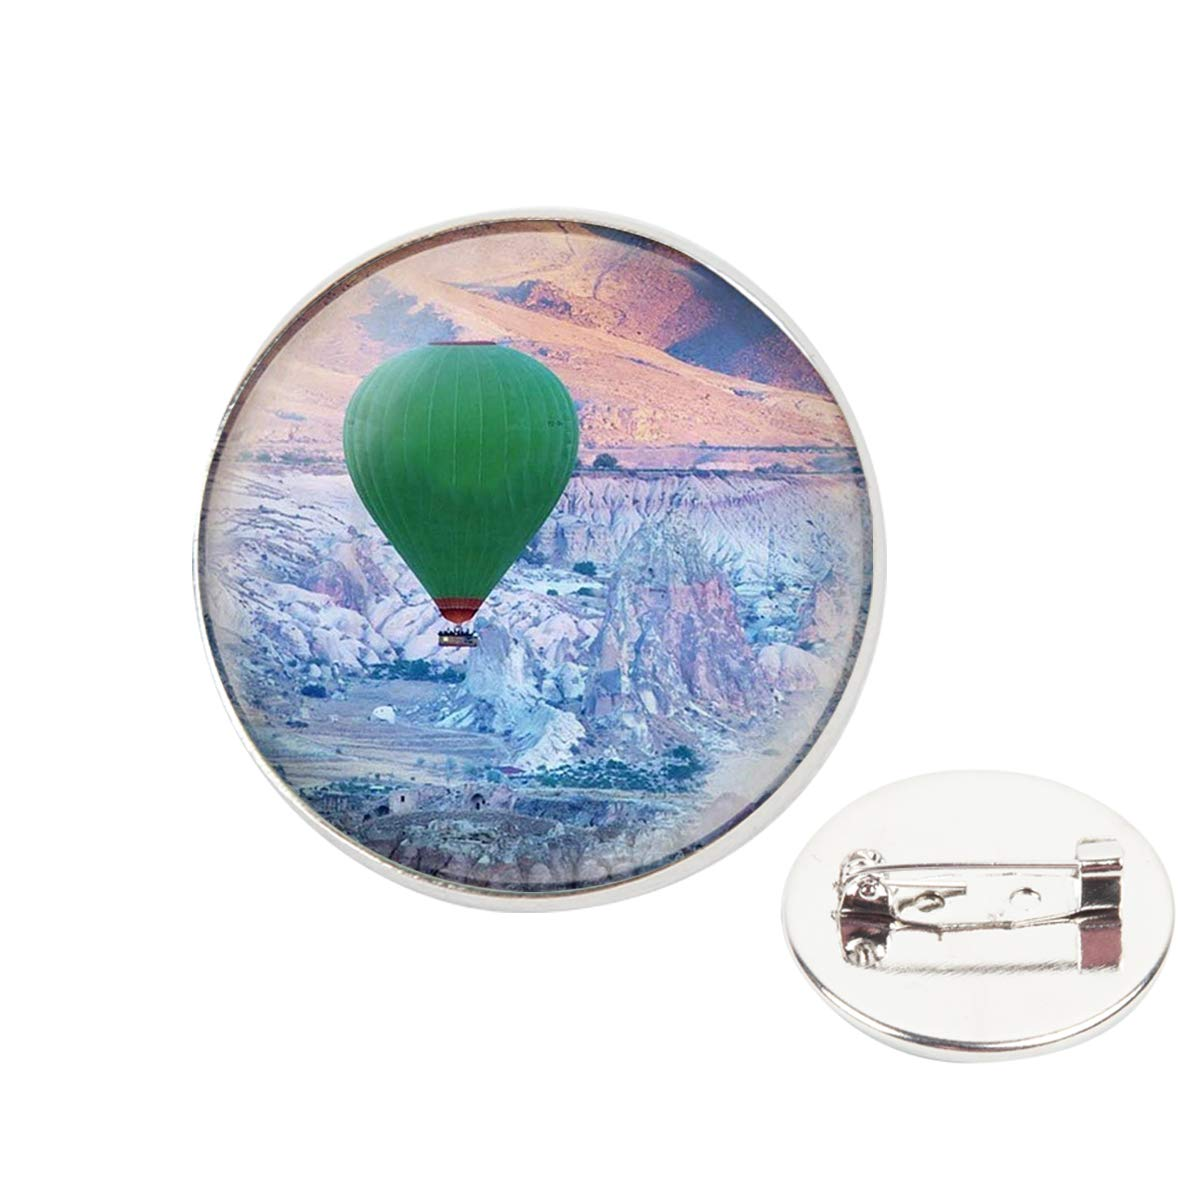 Pinback Buttons Badges Pins Green Fire Balloon Above The Sea Lapel Pin Brooch Clip Trendy Accessory Jacket T-Shirt Bag Hat Shoe